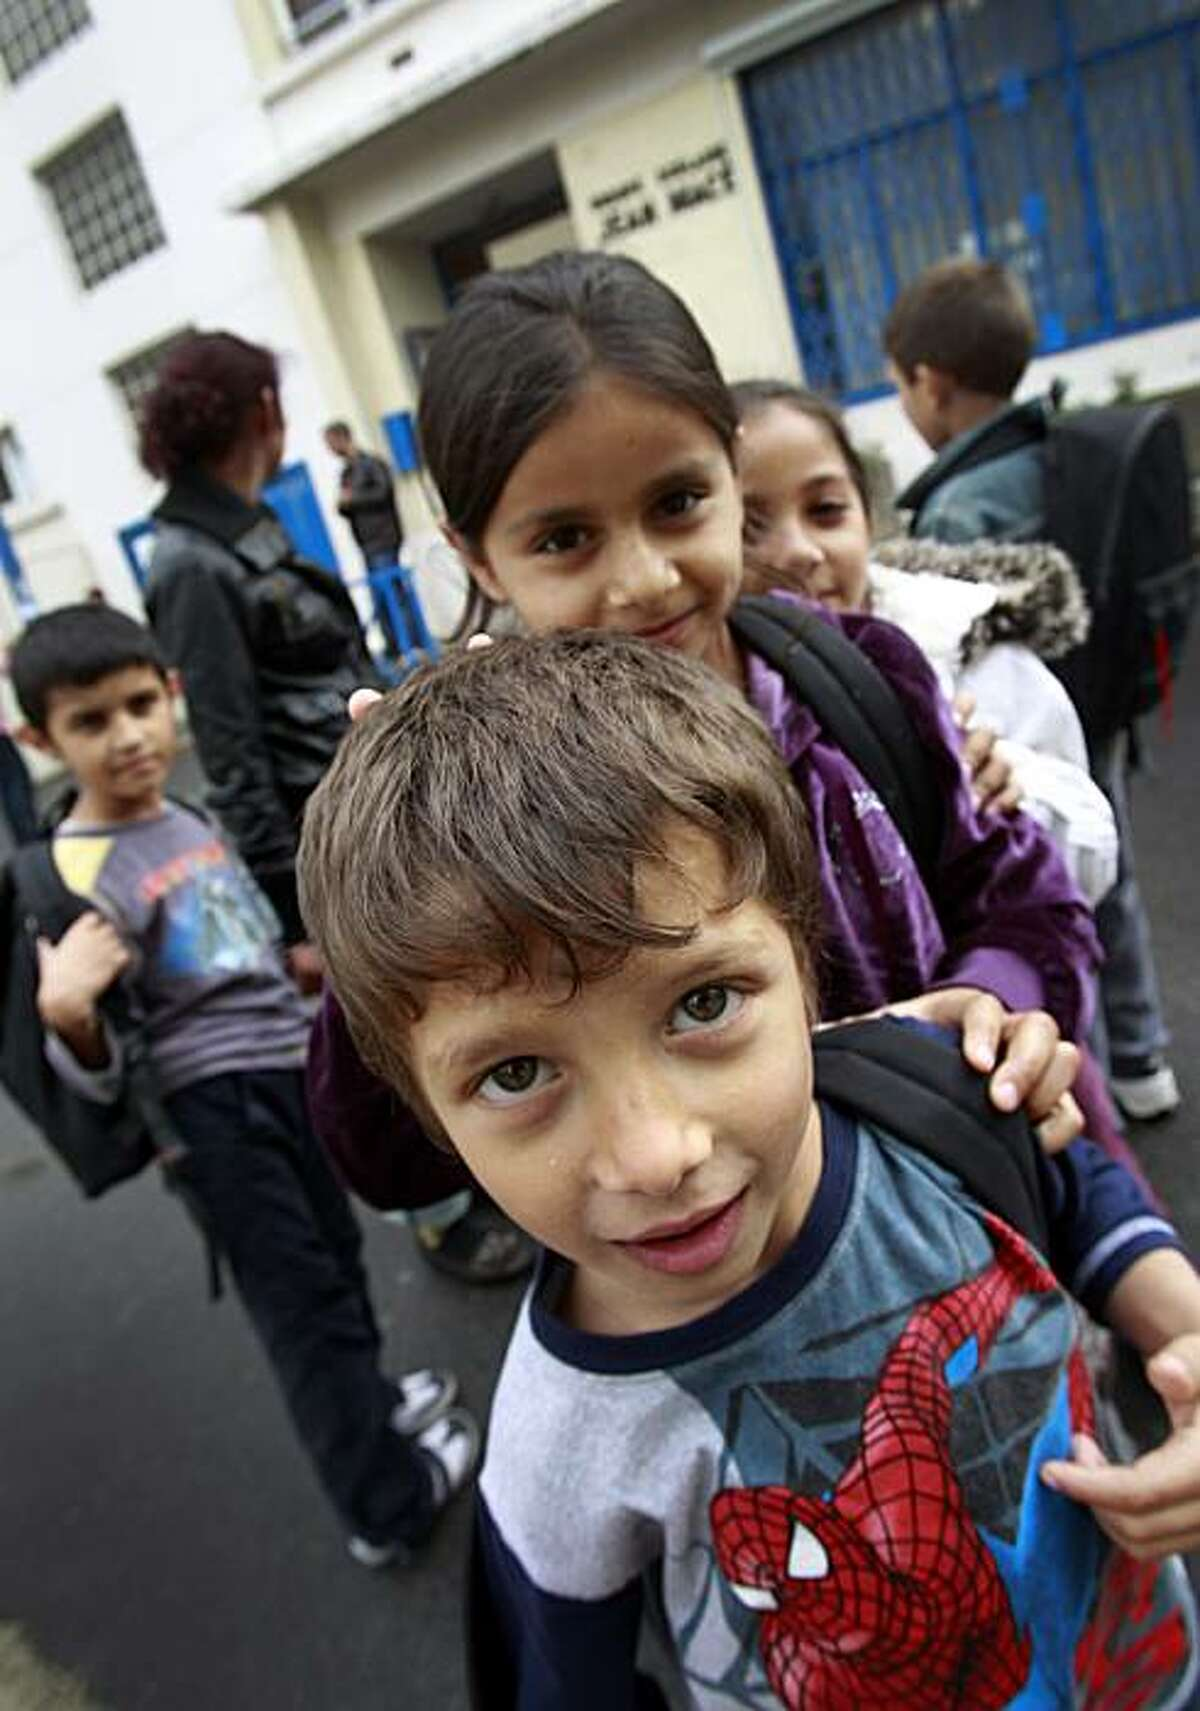 ** ADVANCE FOR USE SUNDAY, OCT. 10, 2010 AND THEREAFTER ** Unidentified Roma children leave school in Choisy-le-Roi, France, south of Paris, on Friday, Sept. 24, 2010. For Europe's 10 to 12 million Roma, as Gypsies are also known, a central factor in their impoverishment is poor access to education, with problems ranging from late starts to early dropouts, from segregated schools in Eastern Europe to the systematic misdiagnosis of mental disabilities.